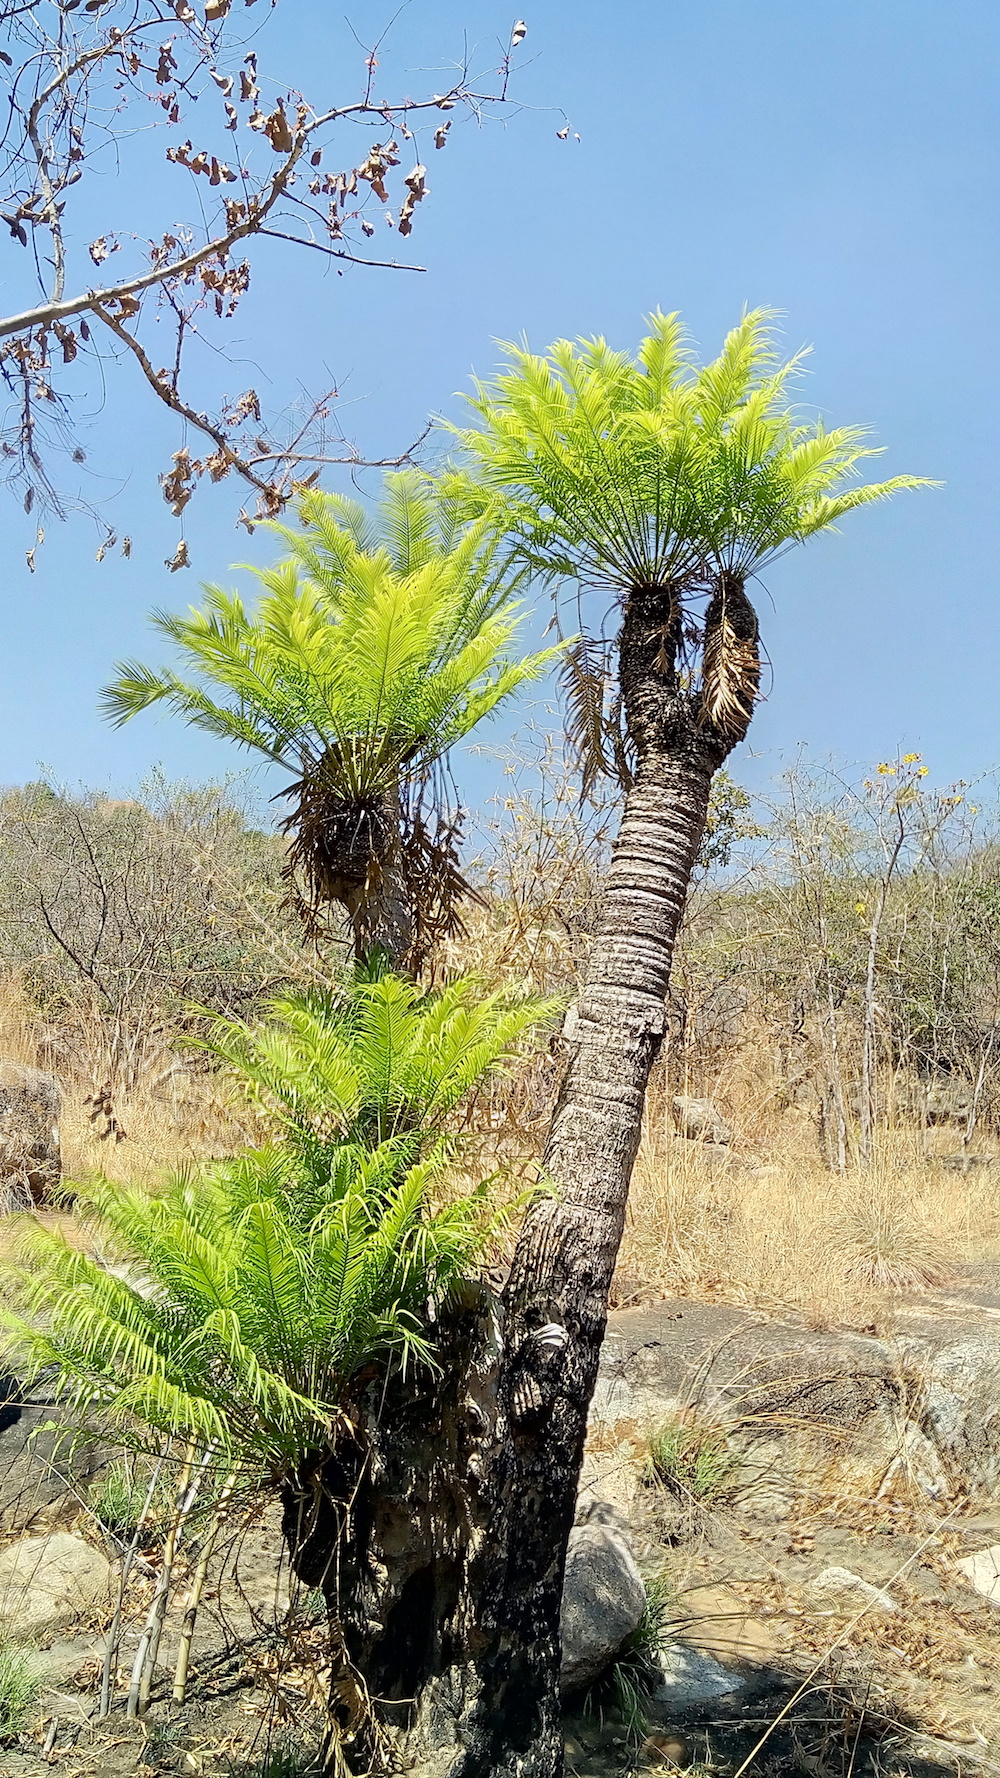 Cycas swamyii (  ಮೊಂಡಿಚ್ಳು) is an ancient example of evolution in flora. It is an ornamental species but more needs to be known about its ecology to allow for in-situ and ex-situ conservation of this endangered tree.